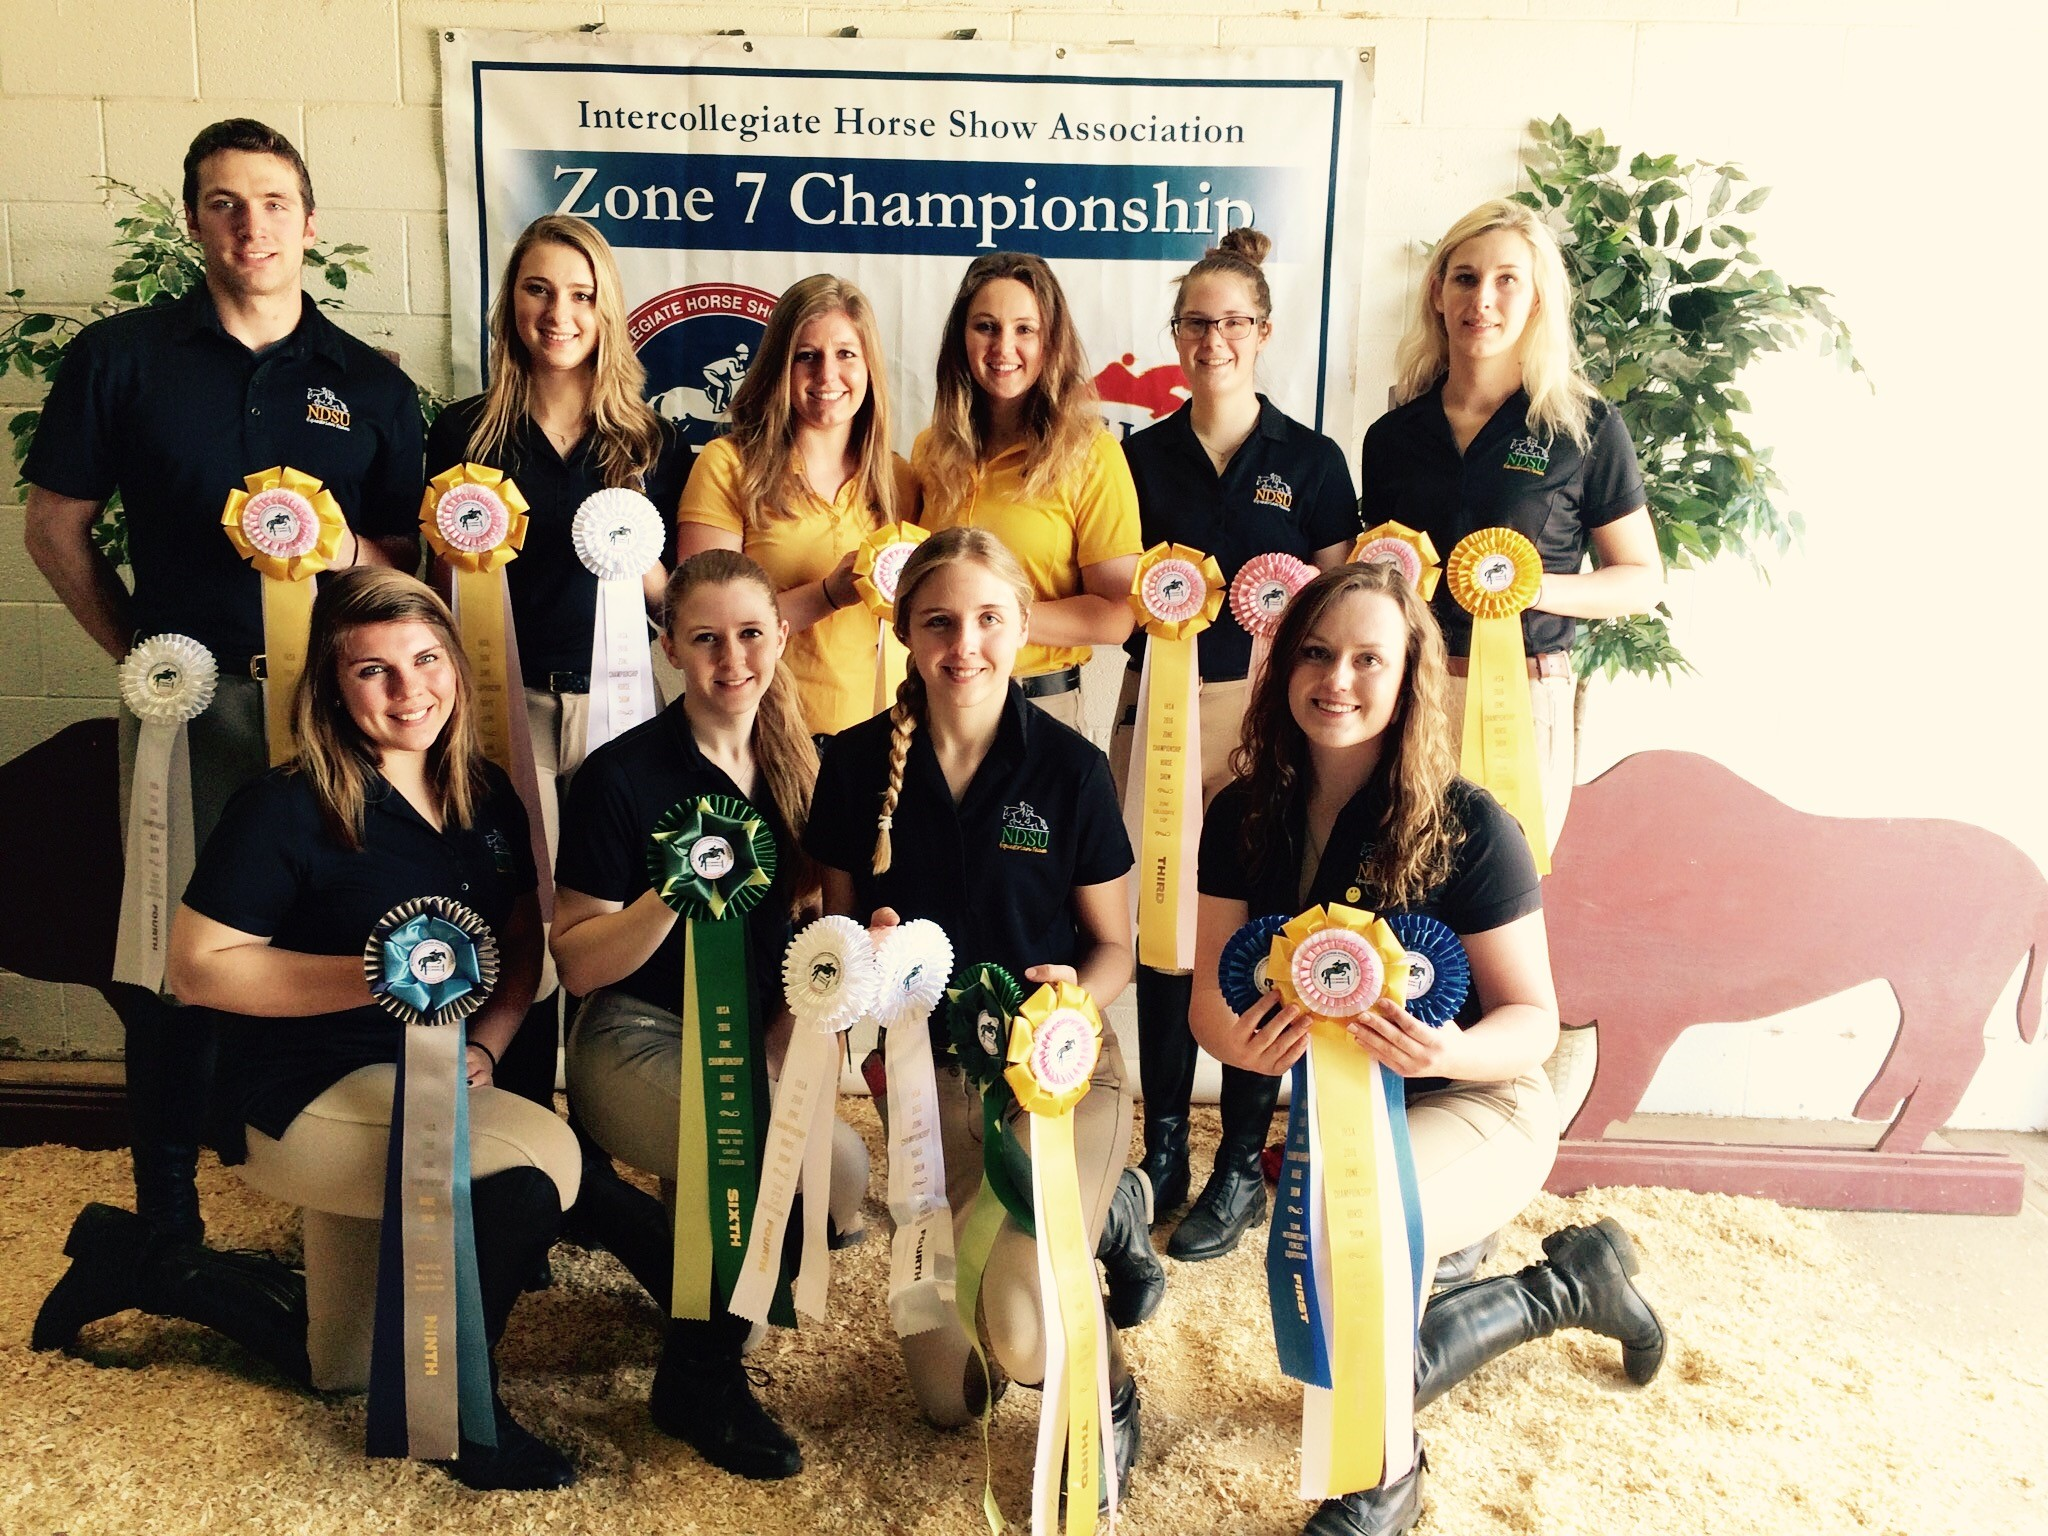 The NDSU hunt seat equestrian team takes third place in zones comeptition hosted by West Texas A&M. Pictured are, from left, front row: Bryn Halley, Hailey Aagard, Kayla Young and Morgan Samuelson; back row: Nick Scarberry, Bridget Kackos, Mattia Gunkelman, Rebecca Prasch, Emma Ballard and Dana Williams. (Photo courtesy of Mattia Gunkelman)